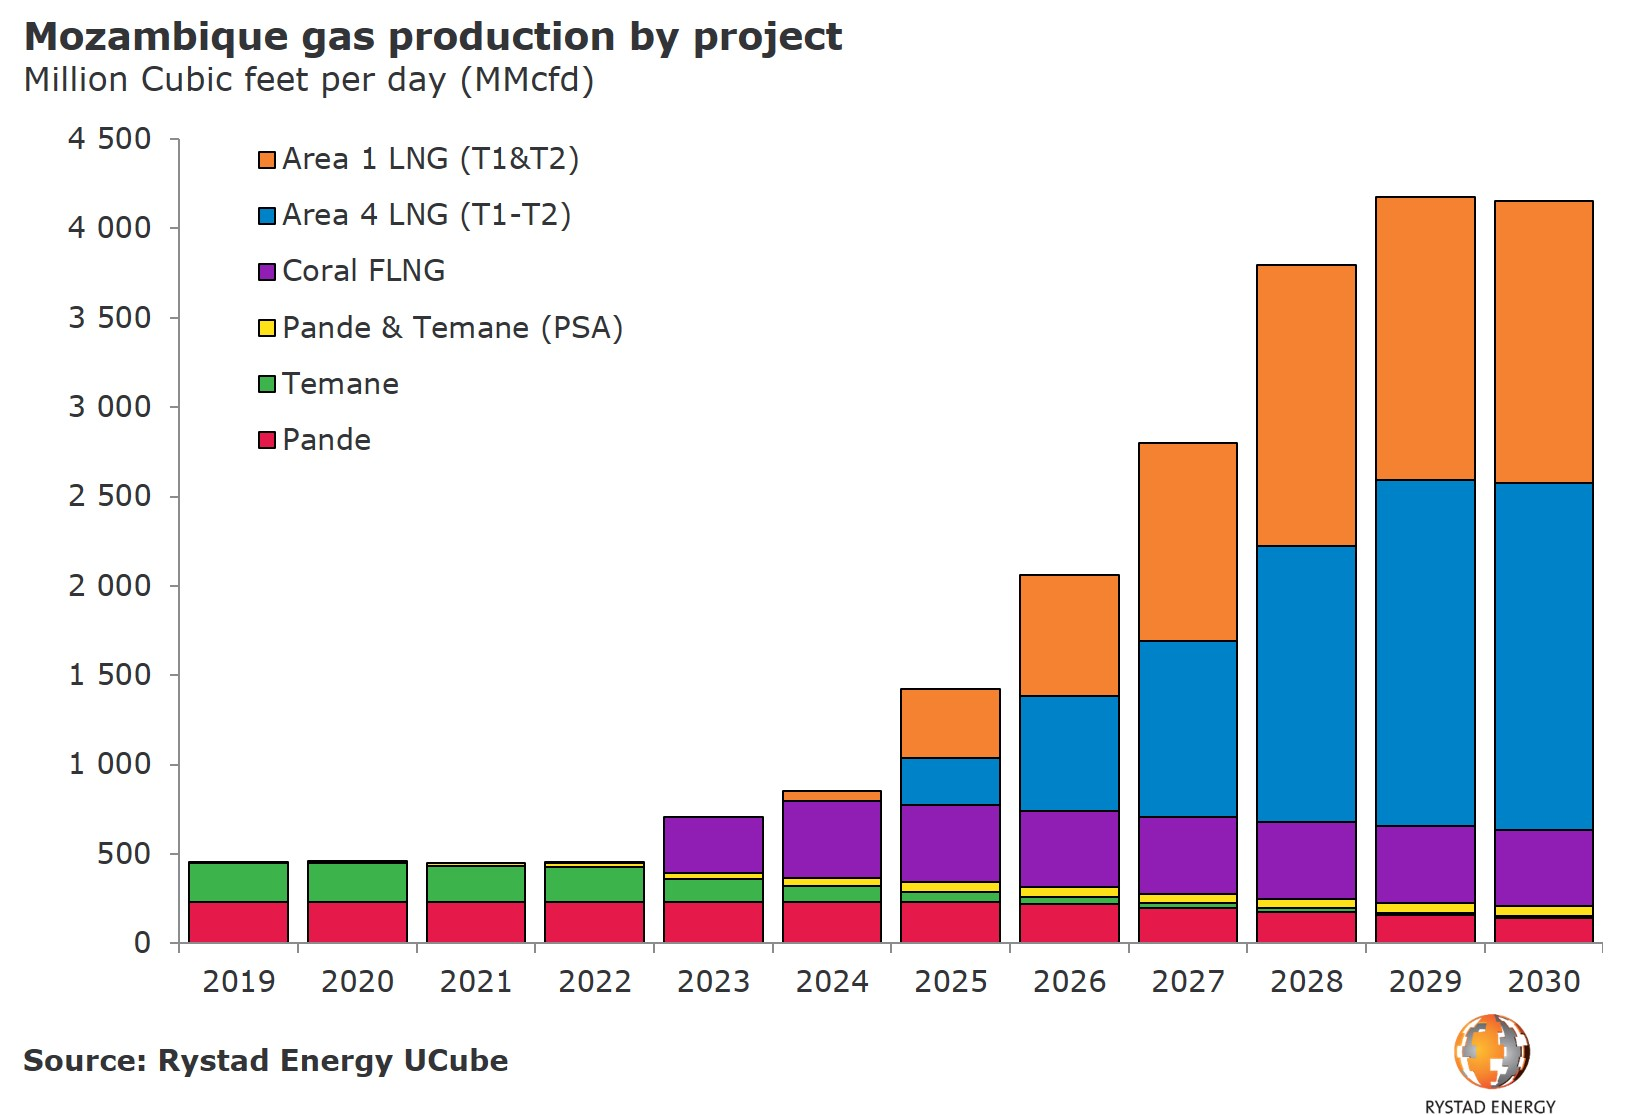 20190627_PR Chart Mozamique gas production profile project 2019-2030.JPG